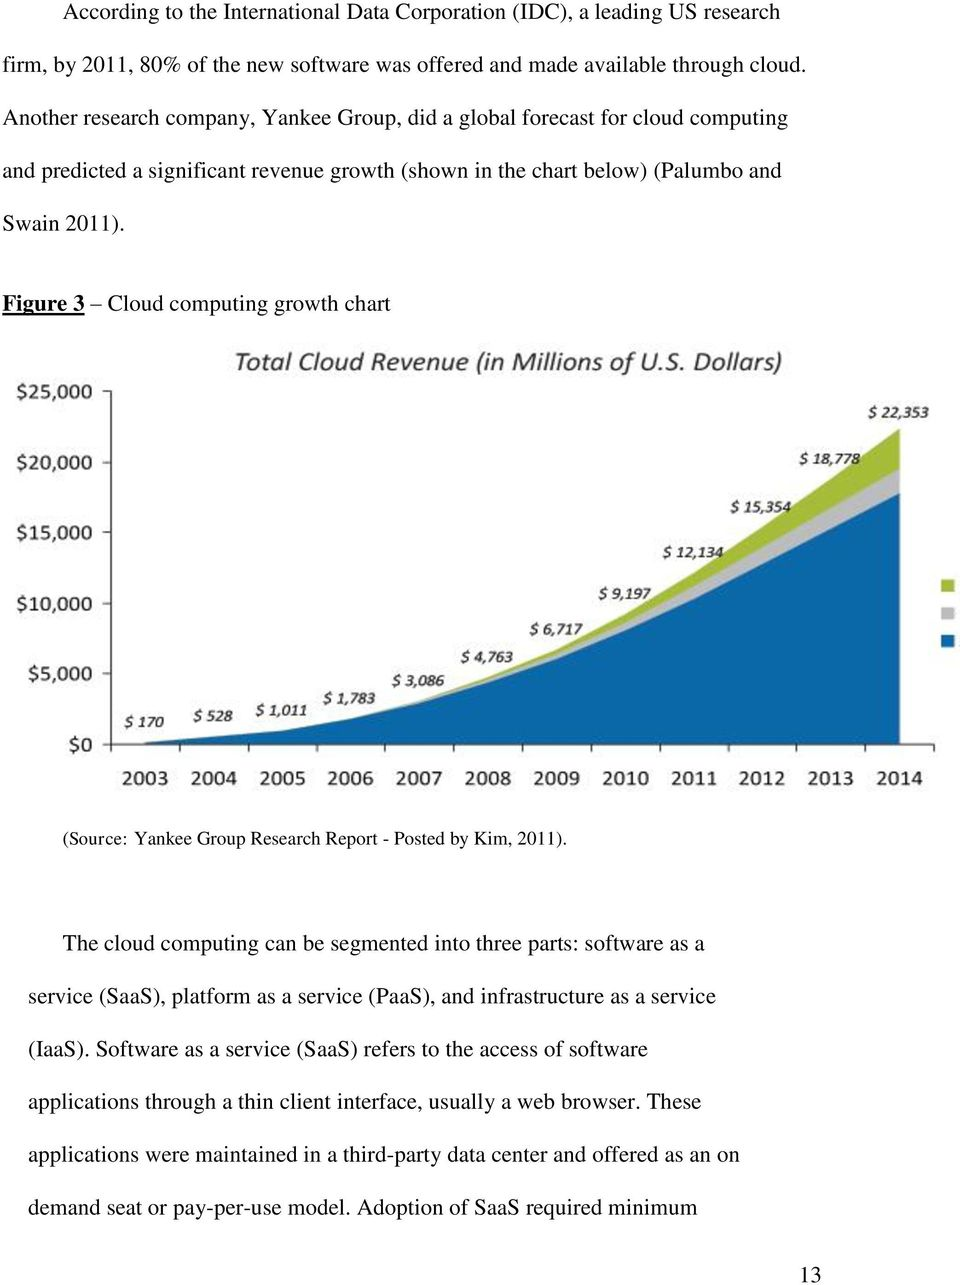 Figure 3 Cloud computing growth chart (Source: Yankee Group Research Report - Posted by Kim, 2011).